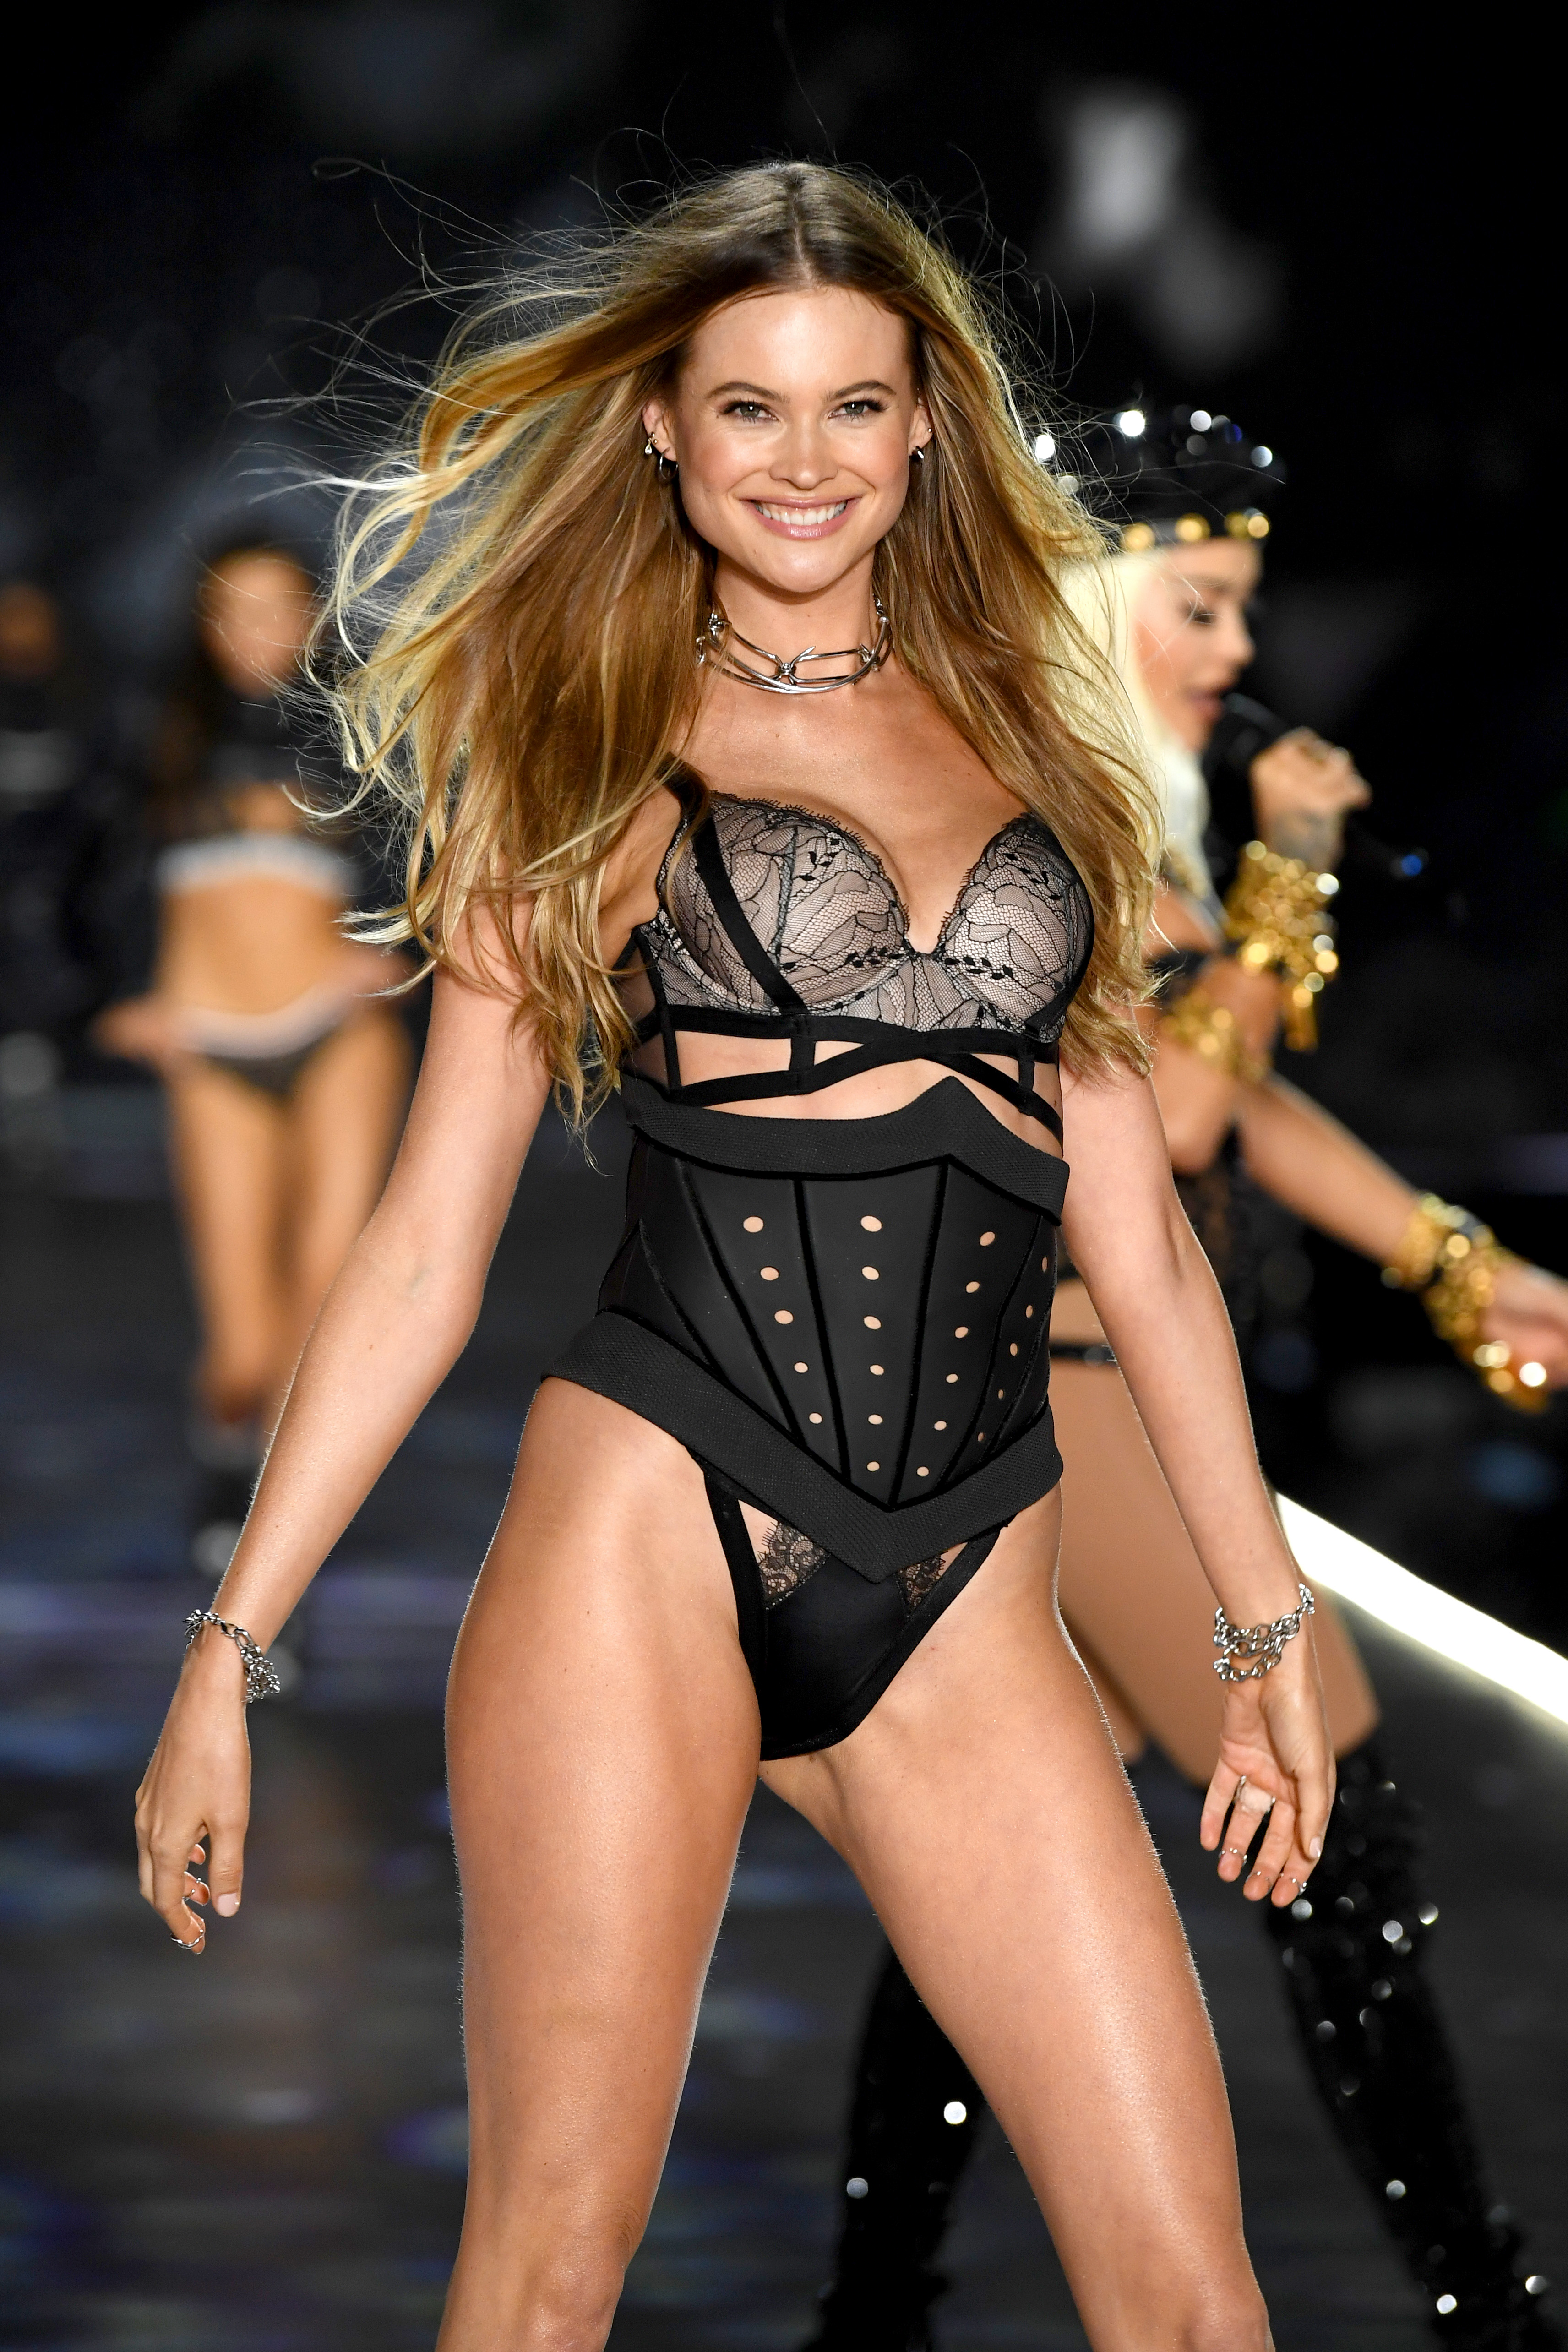 Behati Prinsloo walks the runway during the 2018 Victoria's Secret Fashion Show at Pier 94 on November 8, 2018, in New York City. (Getty Images)